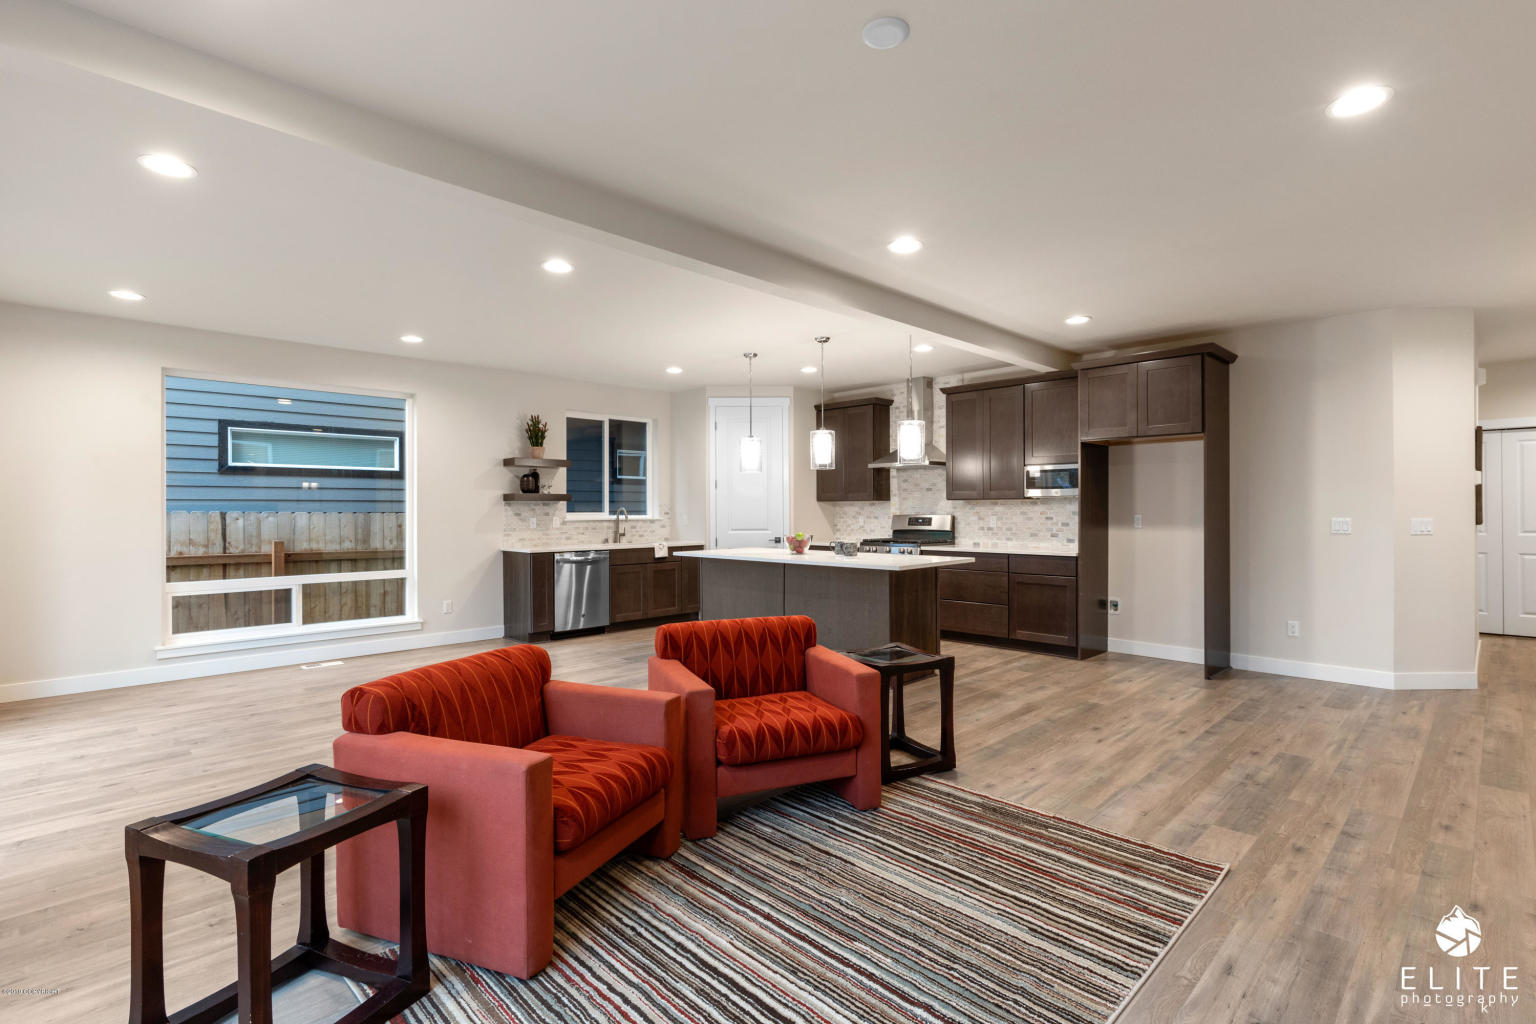 firebird realty anchorage alaska g street downtown valley of the moon 15th custom home luxury condo living